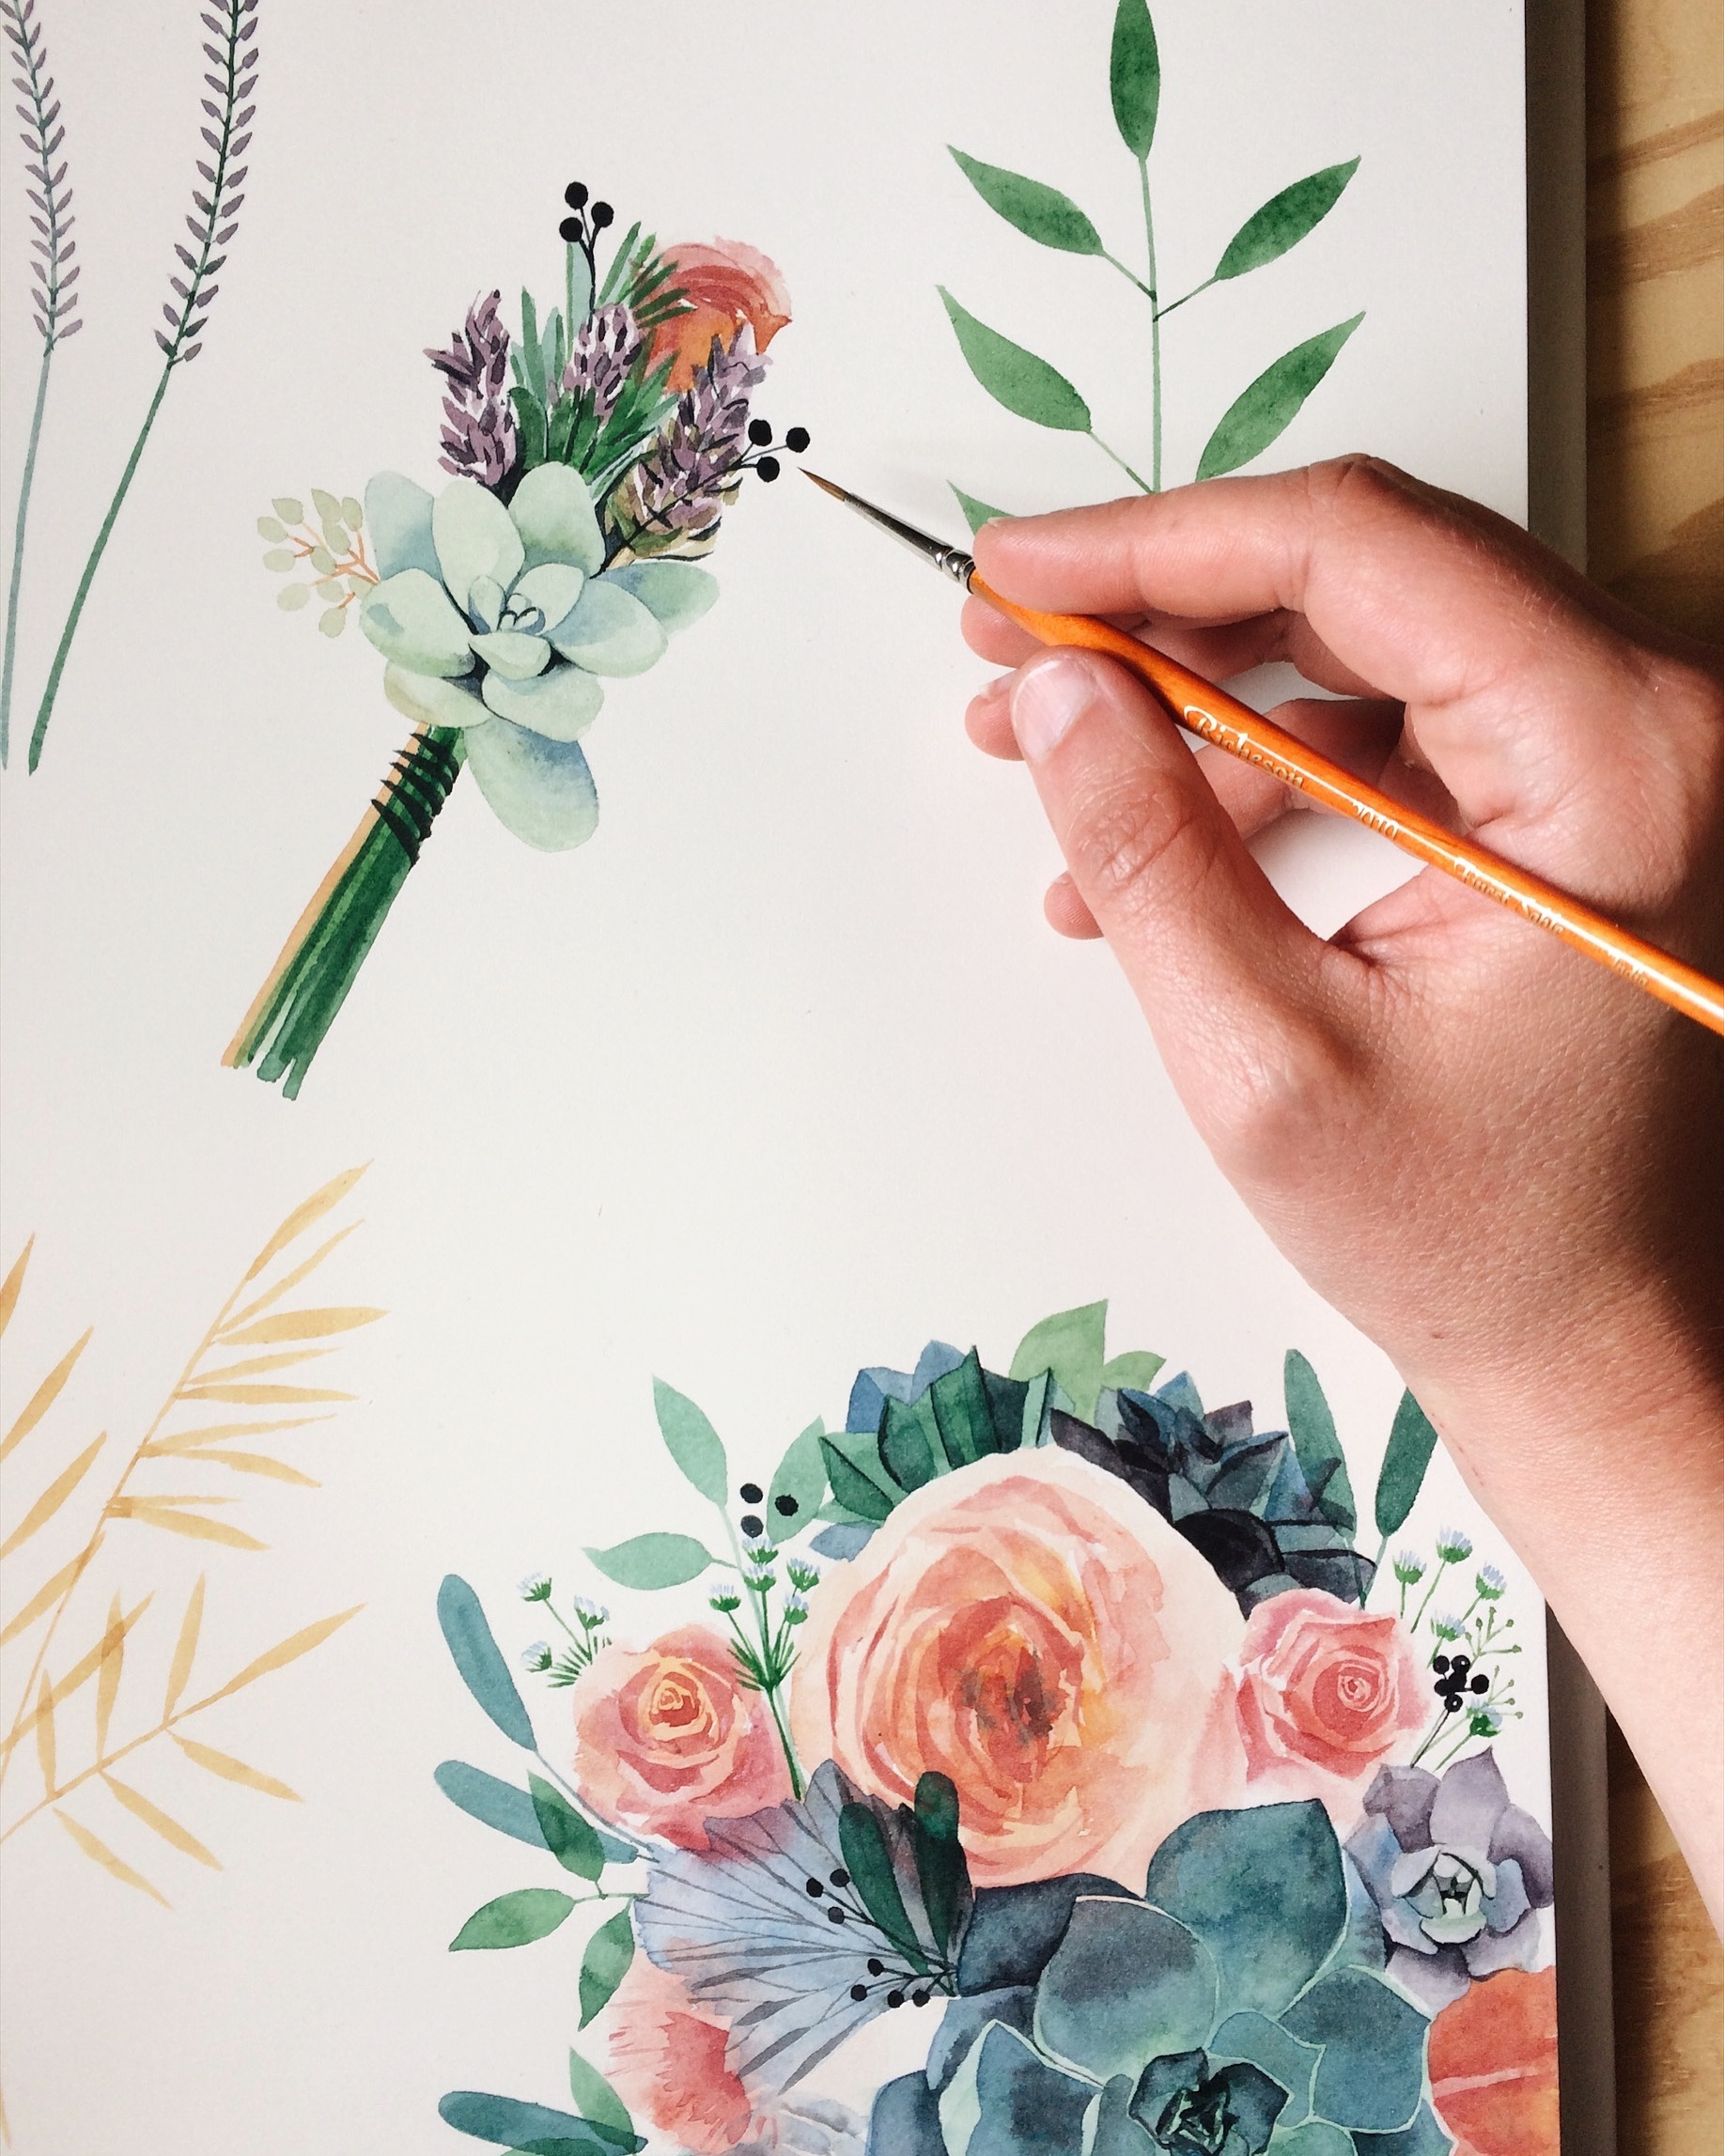 Hand-painted watercolor flowers